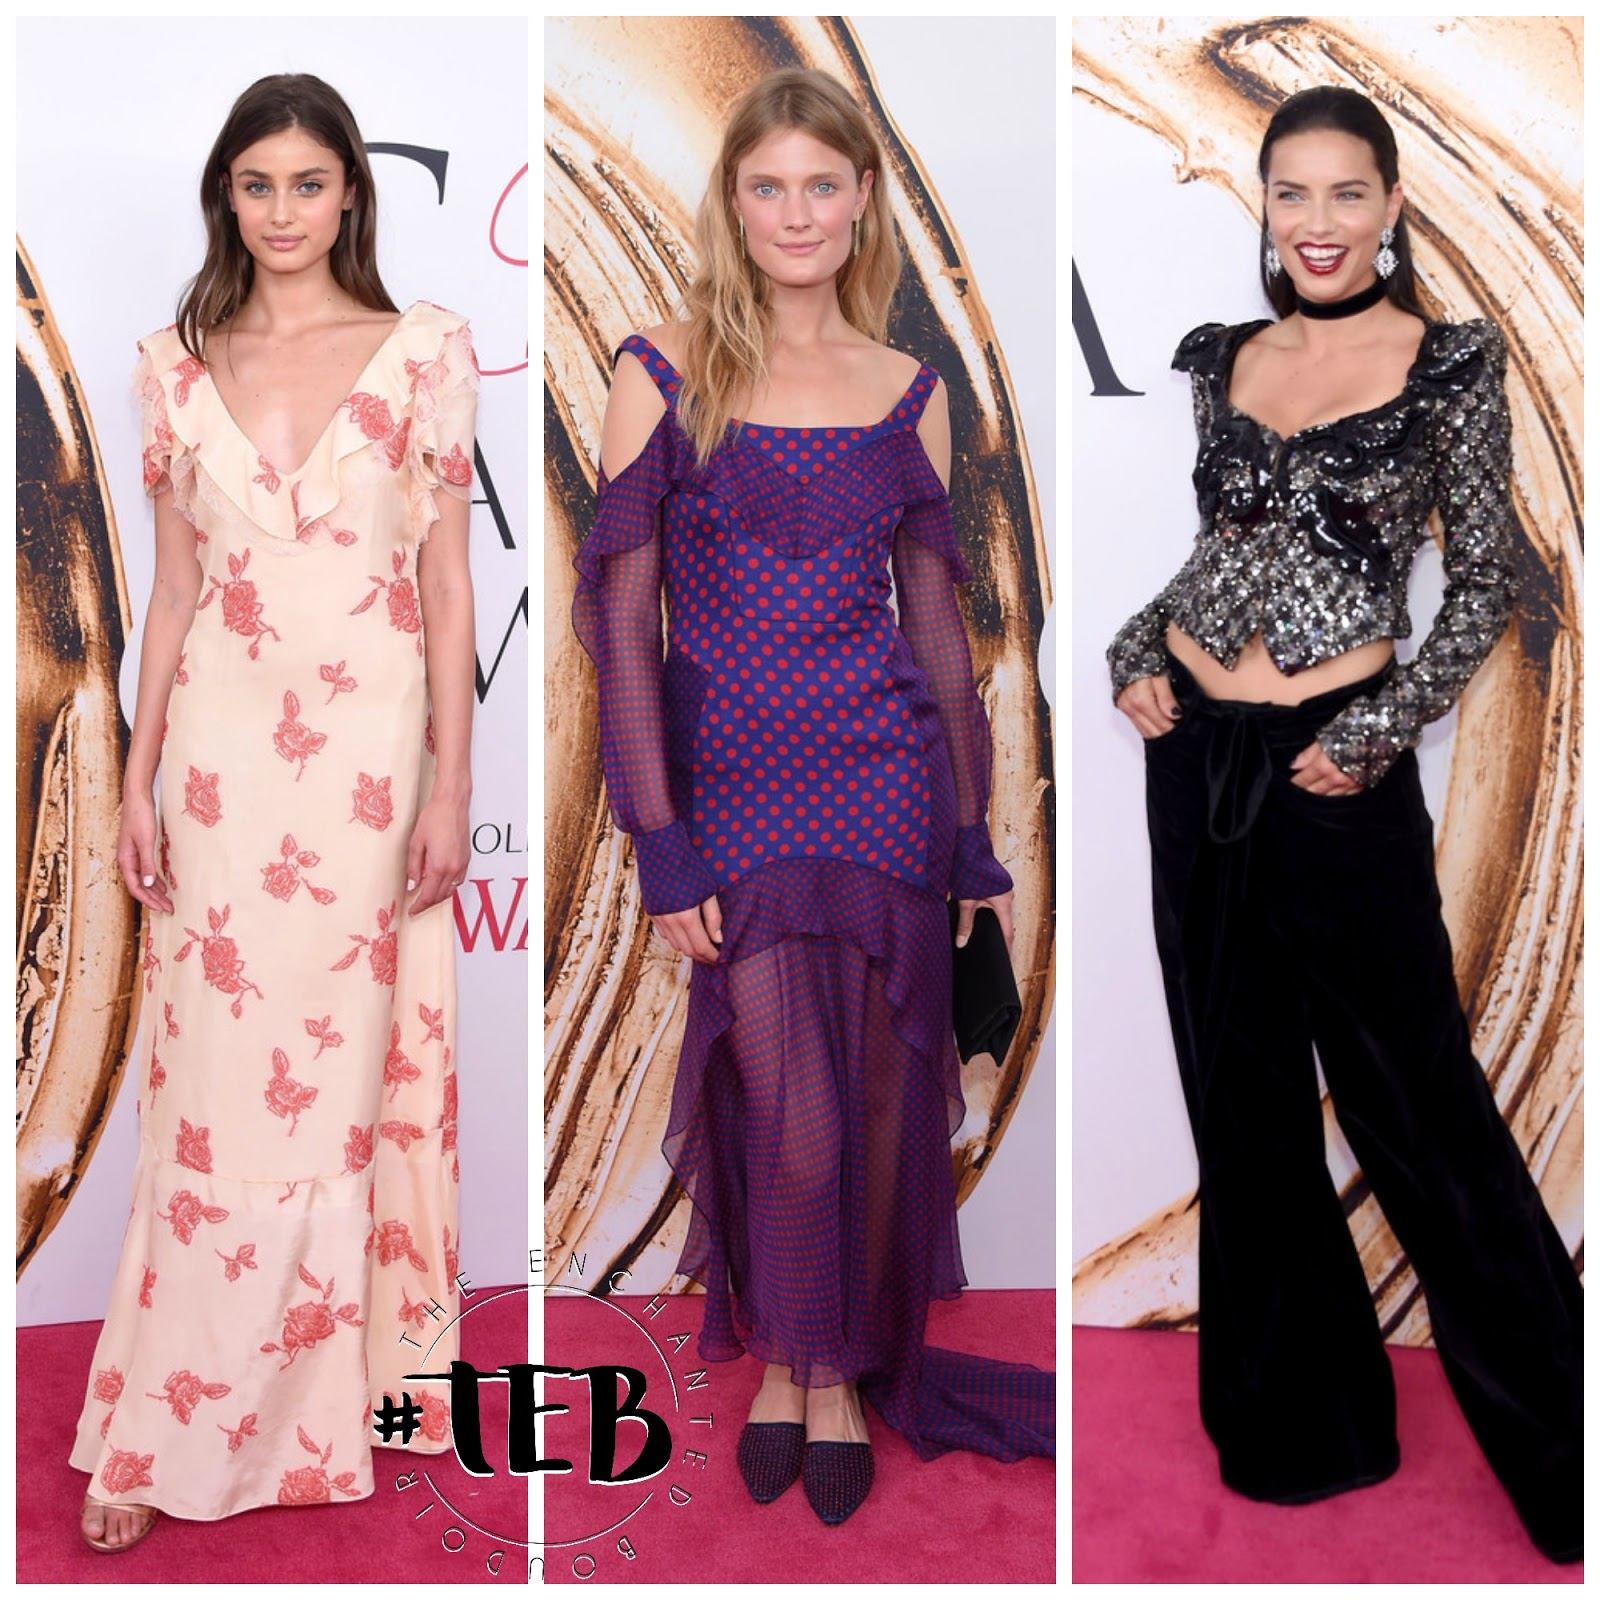 CFDA-worst-taylor-hill-adriana-lima-constance-jablonski